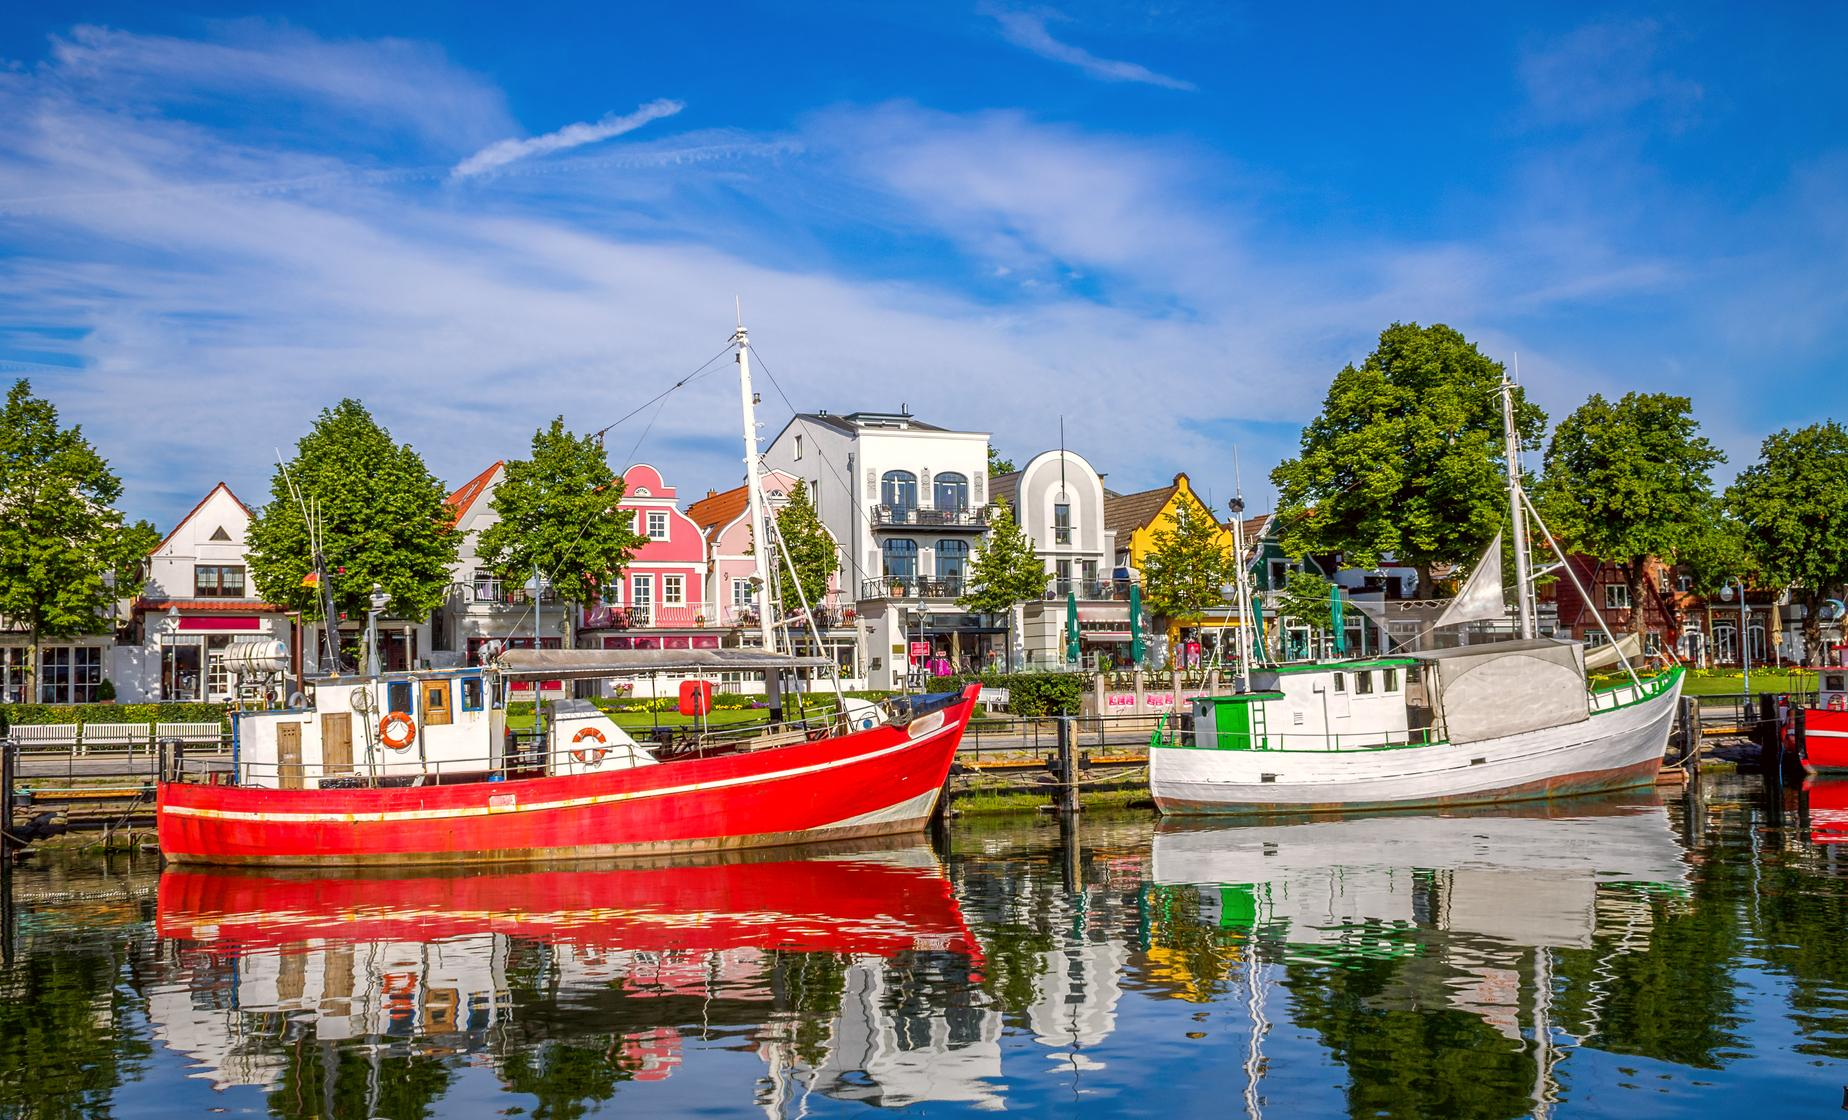 Rostock's Top 10 by Road and River